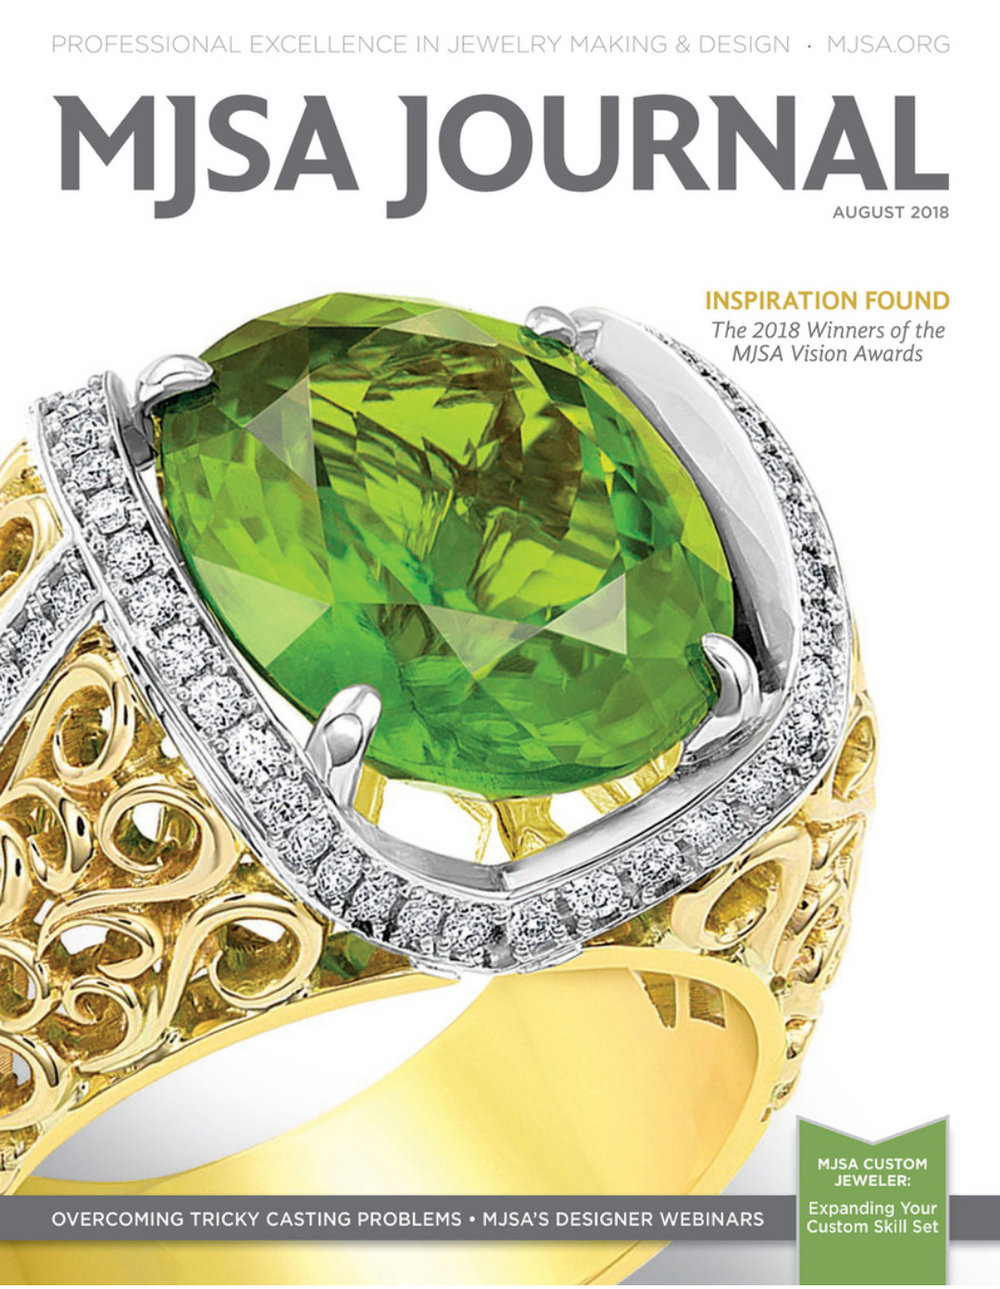 MJSA Jounal August 2018 Issue_Cover Page.jpg